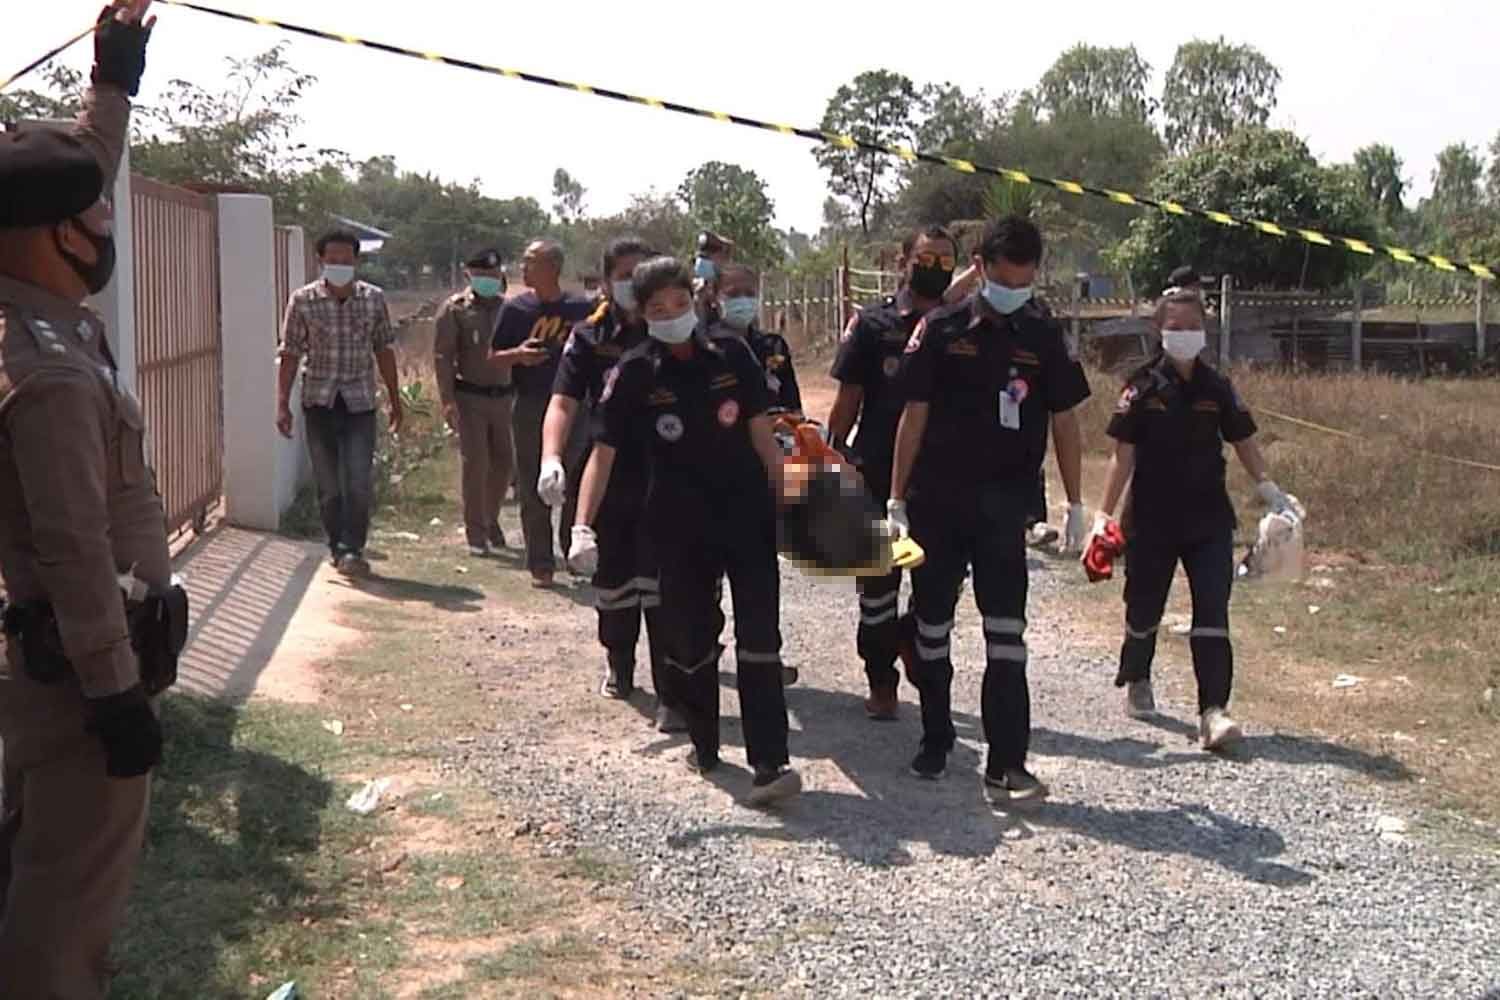 Rescue workers carry off the body of Amornthep Thongchomphu, 22, after his homemade bomb exploded accidentally in a field near his house in Muang district, Khon Kaen, on Friday morning. (Photo: Chakrapan Natanri)